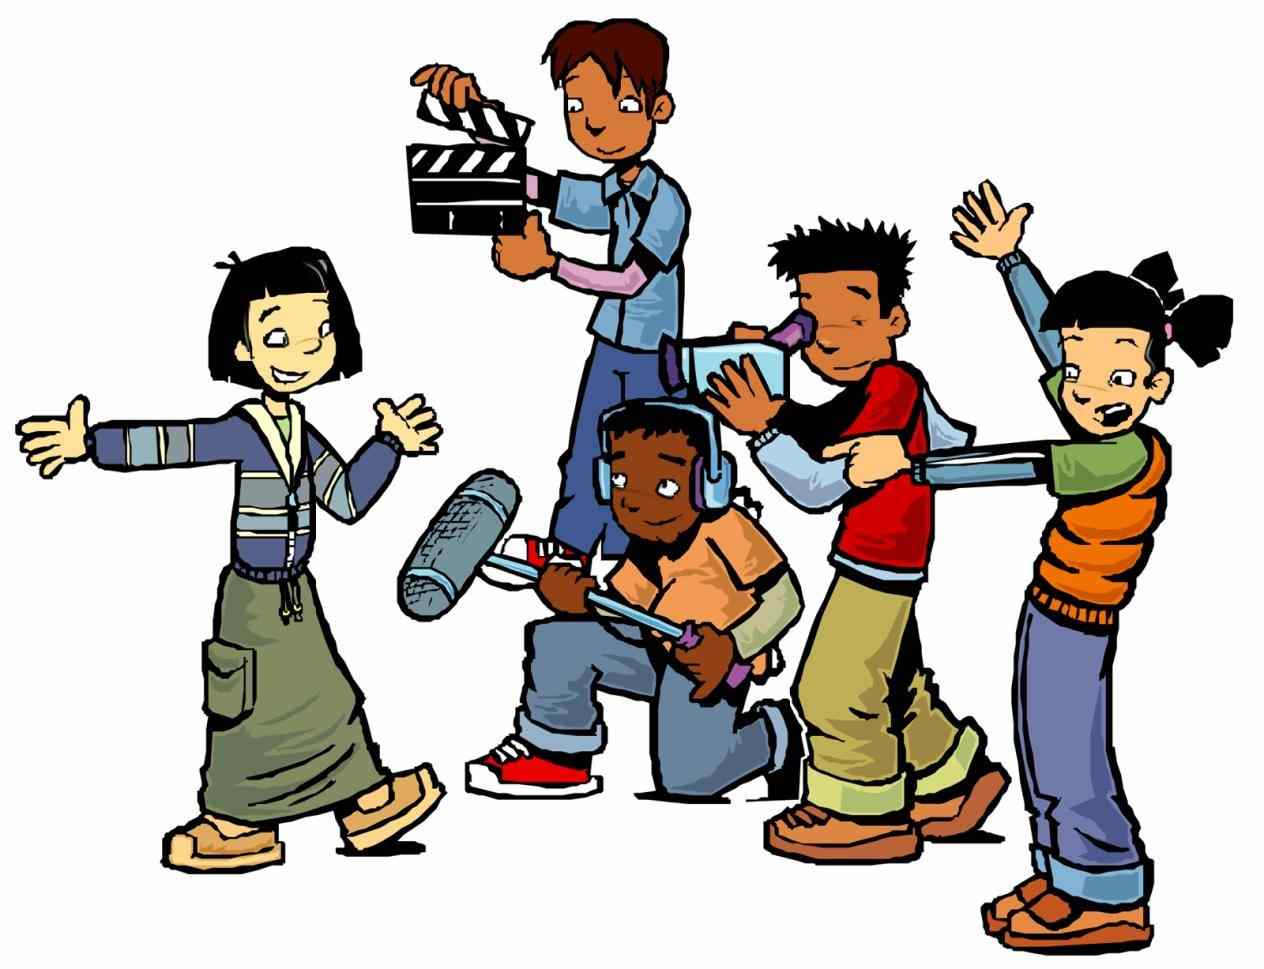 Action clipart action movie. Board clip art movies